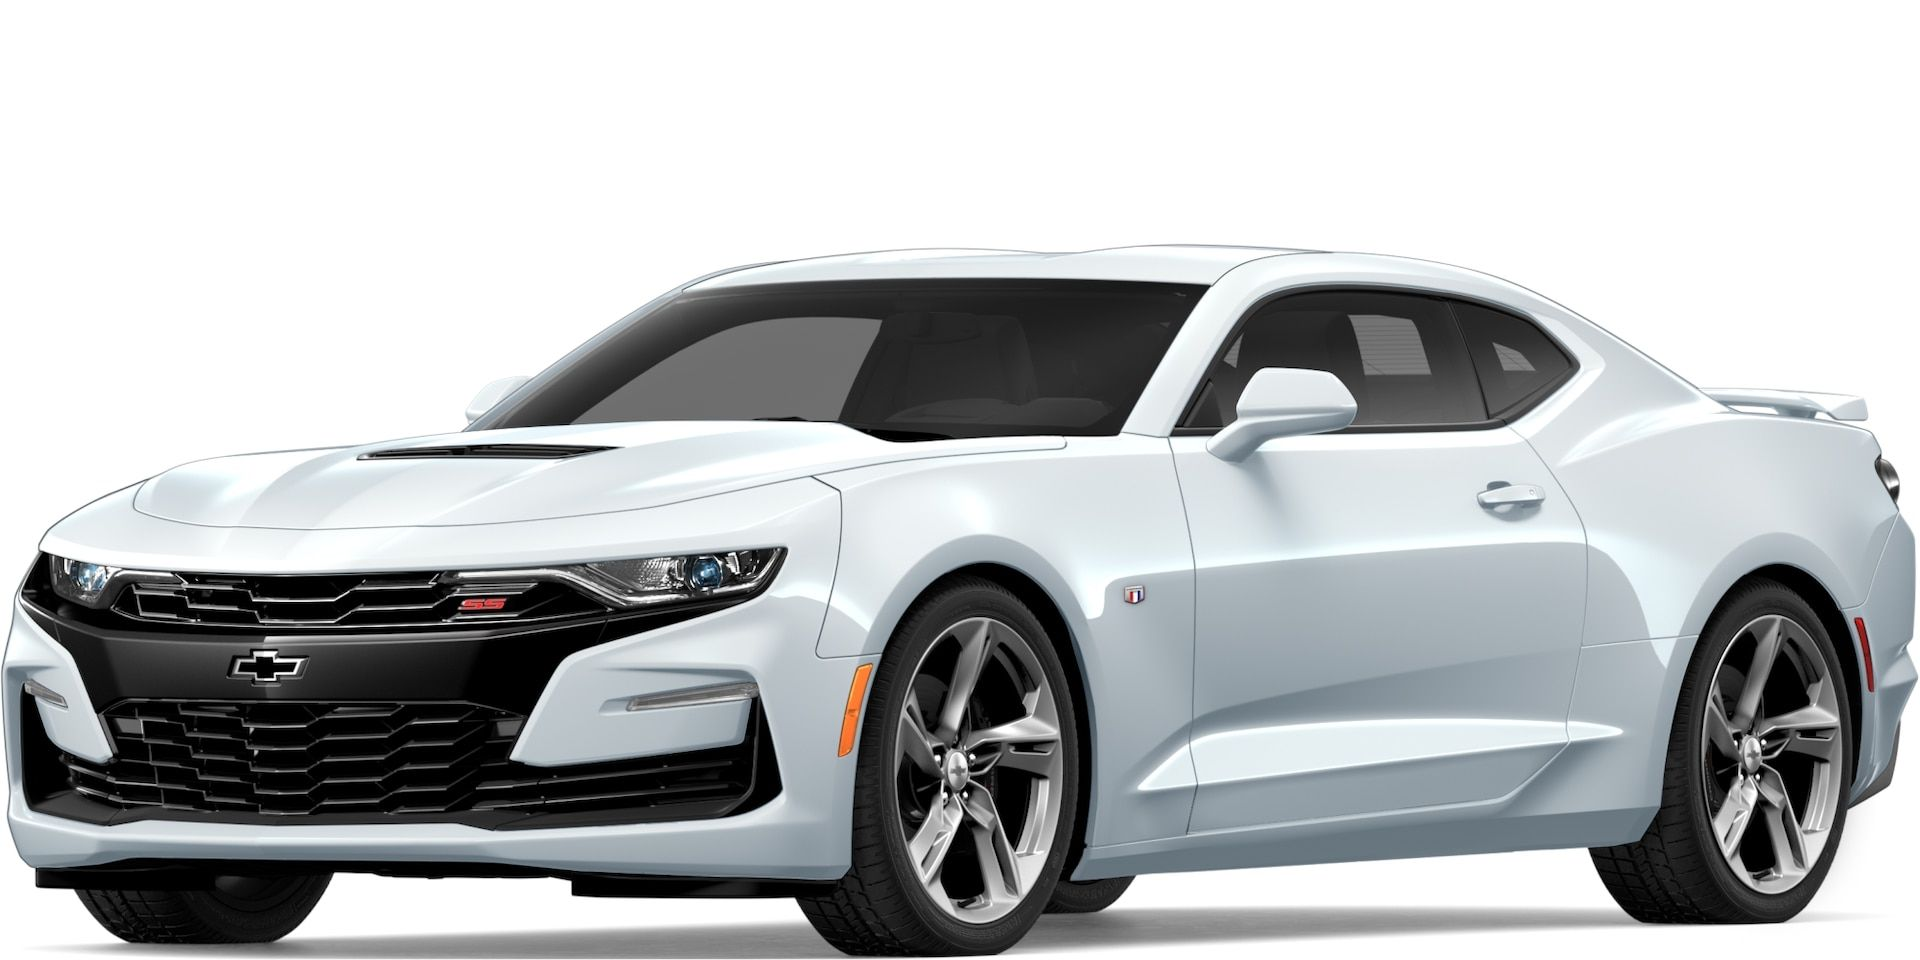 2019 Chevrolet Camaro In Summit White 2019 Camaro Camaro Coupe